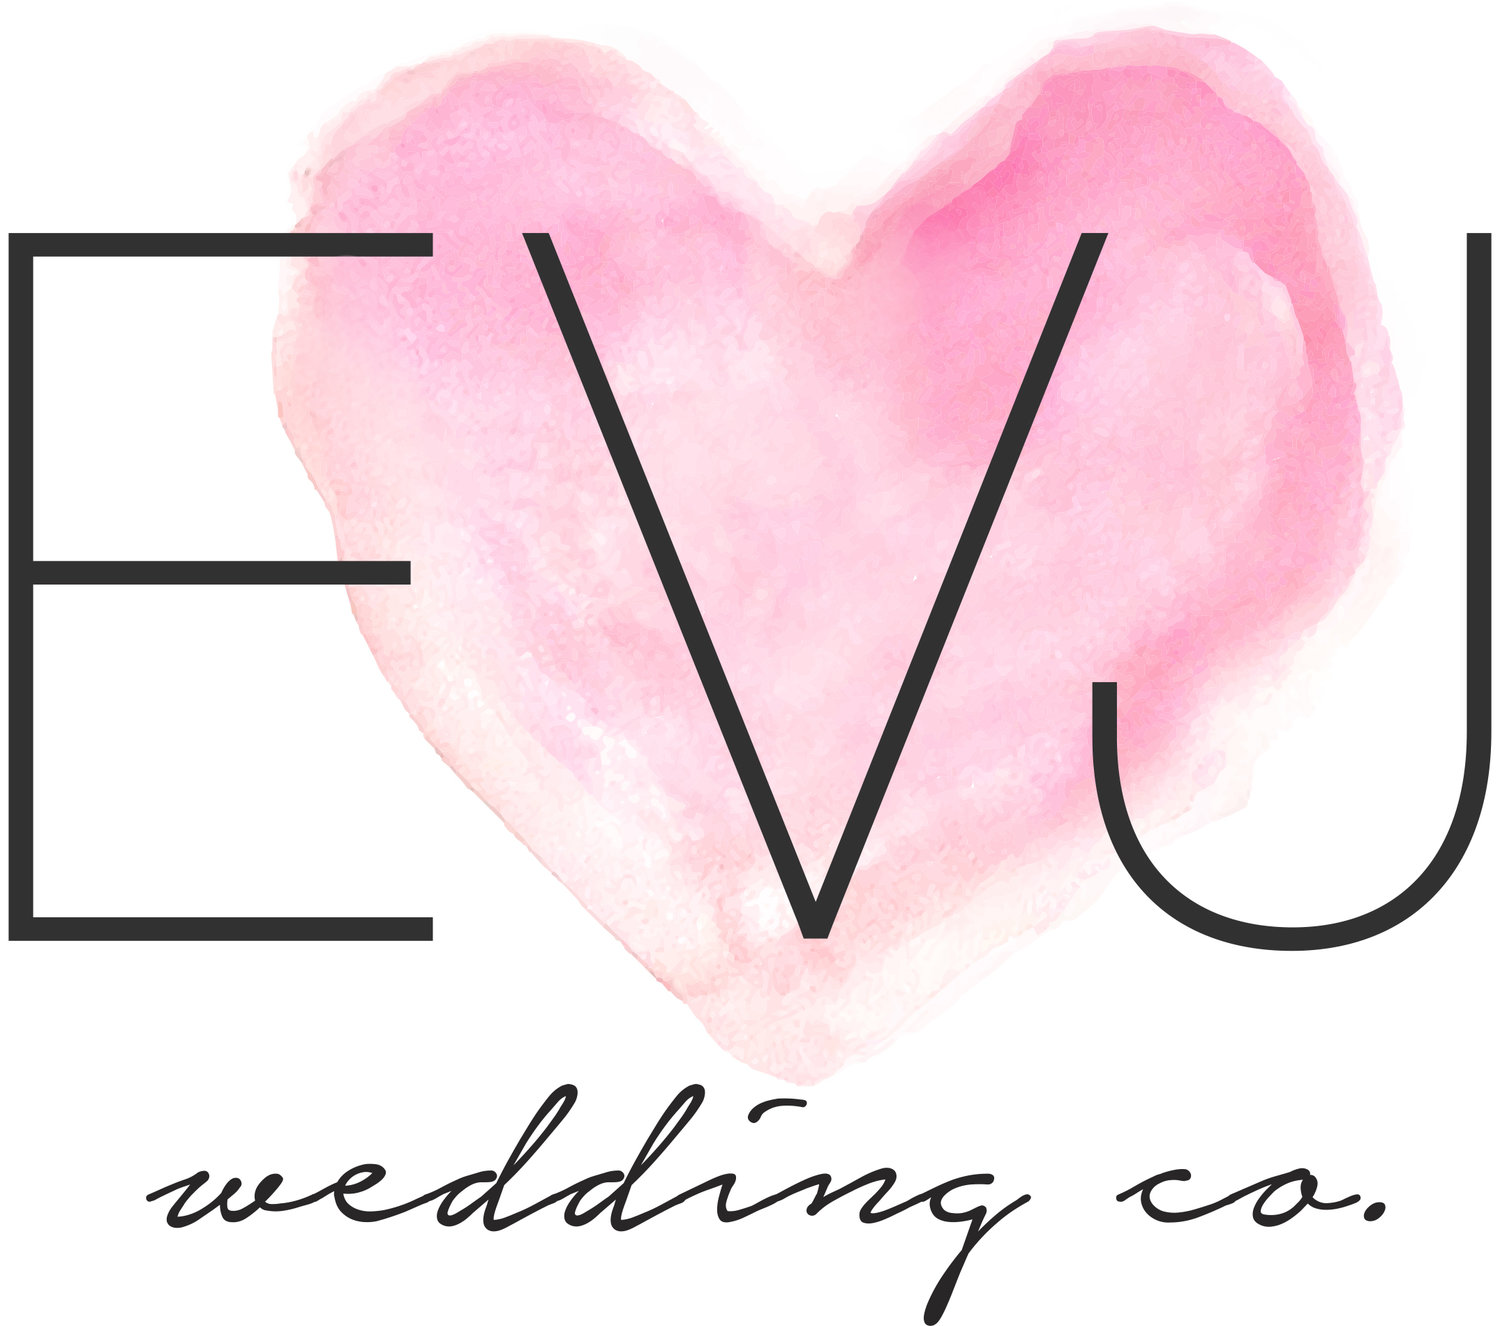 EVJ WEDDING CO.